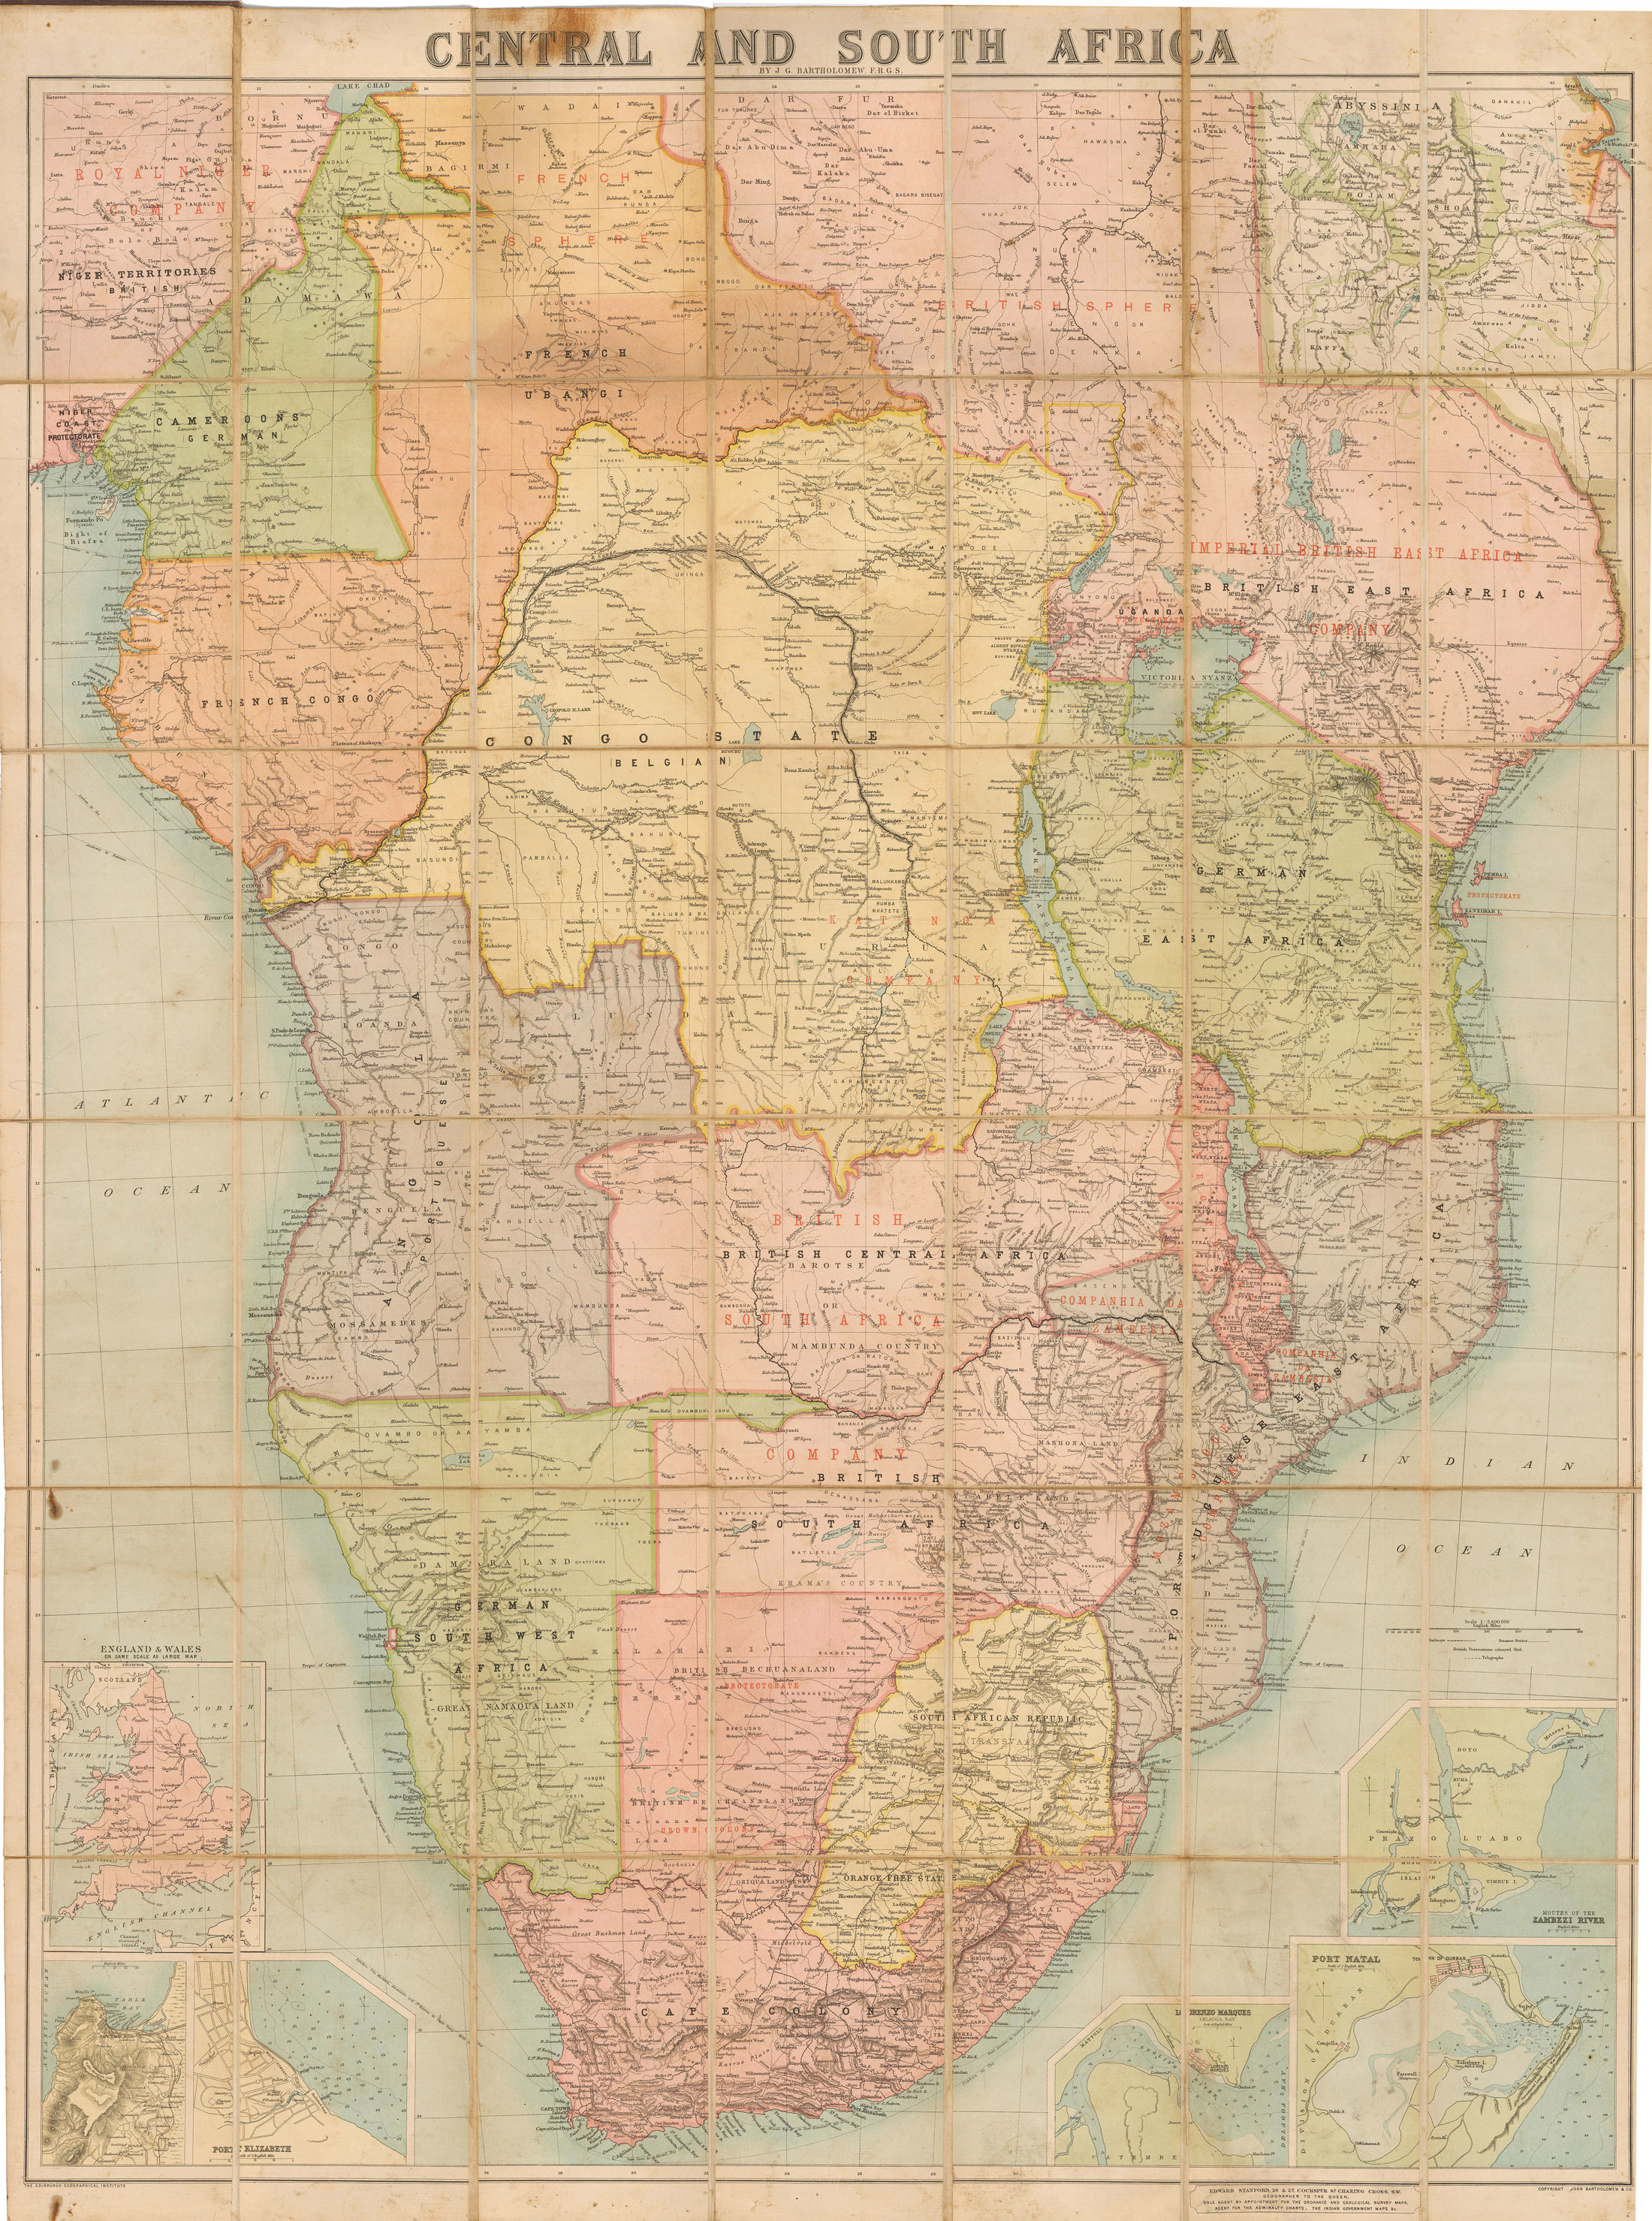 1892 Map of Central and South Africa : hjbmaps.– HJBMaps.